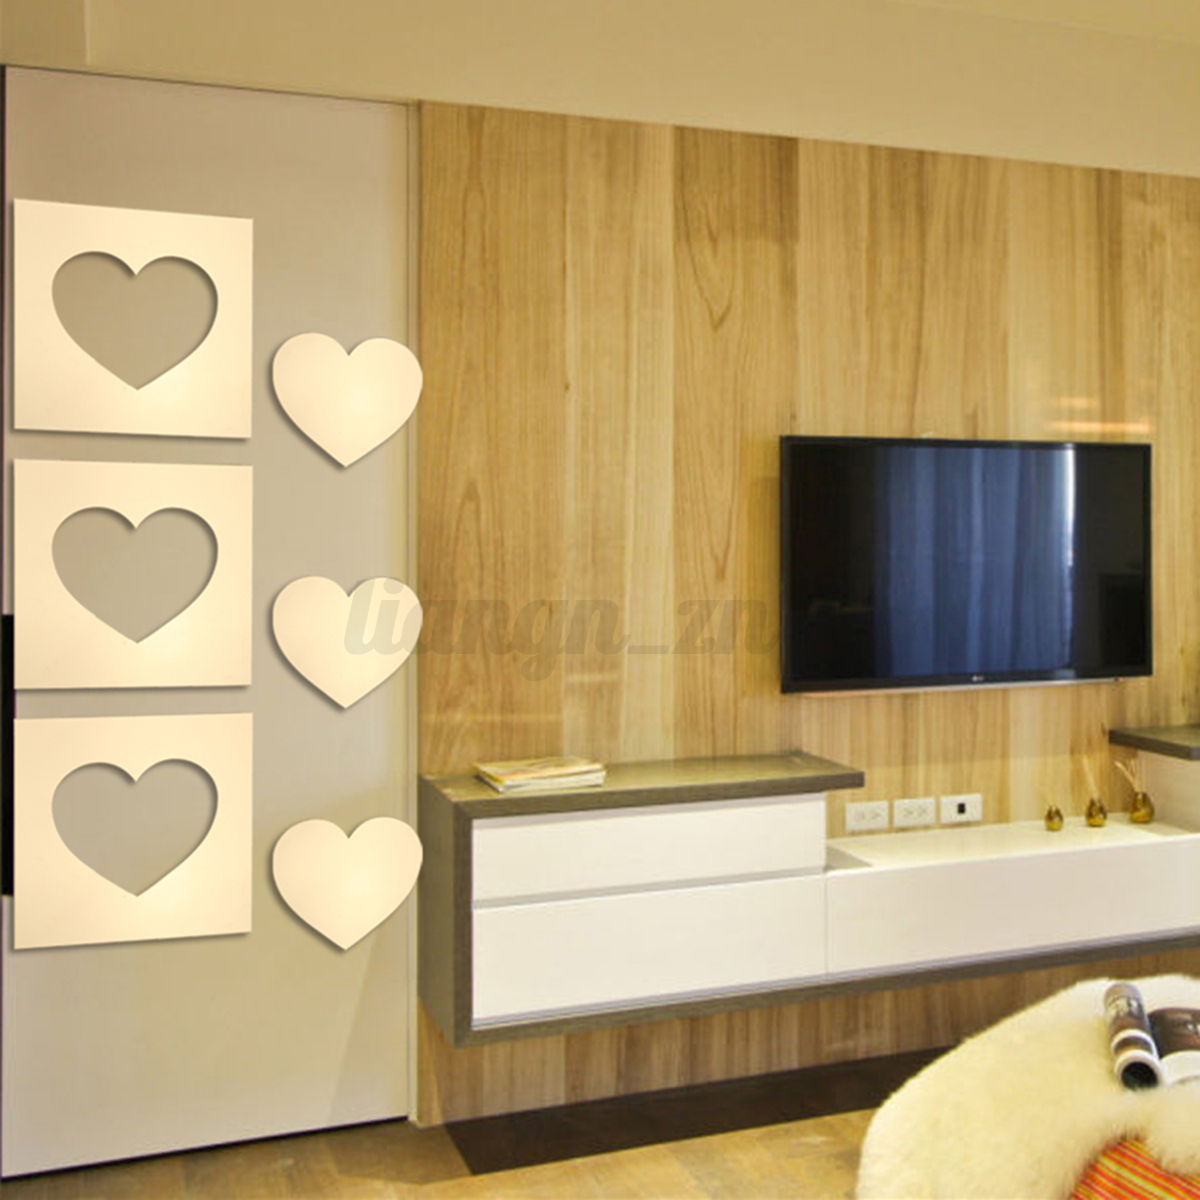 12Pcs Heart Removable Mirror Decal Art Mural Wall Sticker Home Room ...